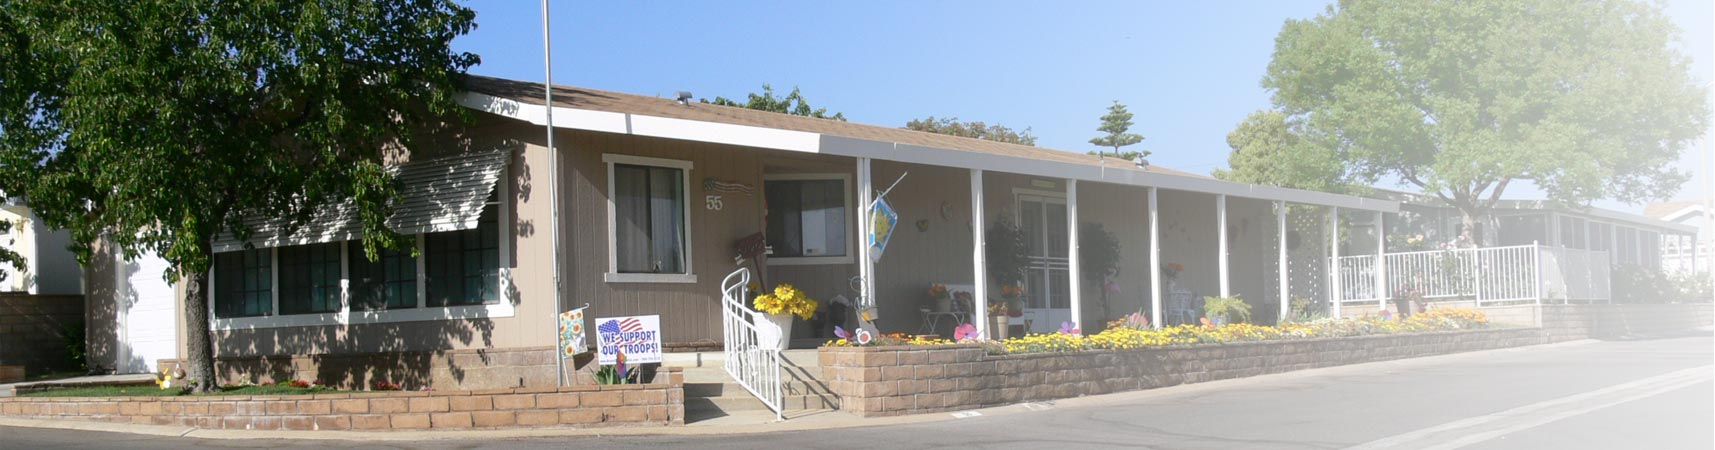 Weve Been Protecting The Rights And Quality Of Life Manufactured Home Owners Since 1962